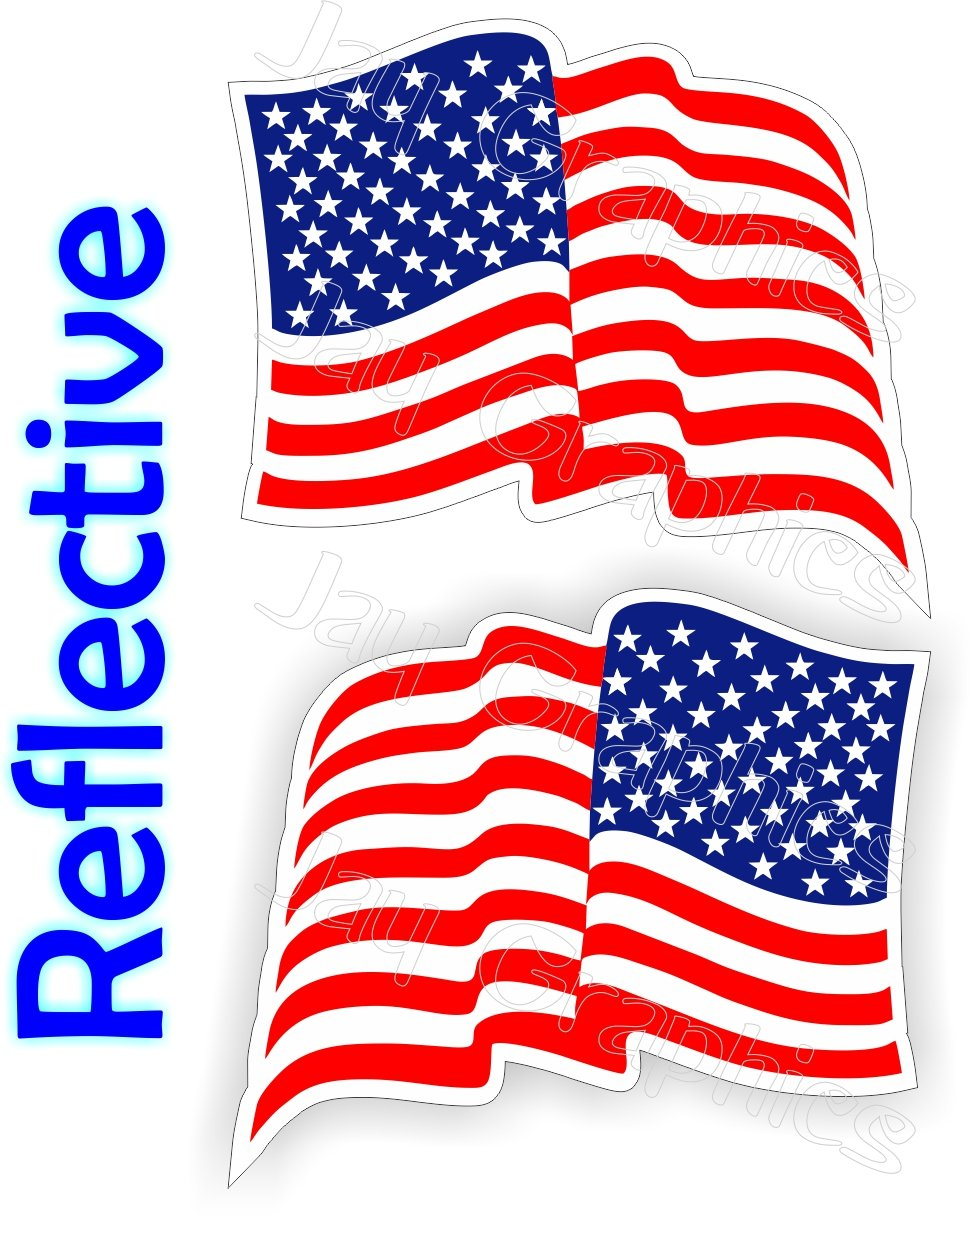 (2) REFLECTIVE Waving American Flags Hard Hat Stickers | Motorcycle Welding Helmet Decals | Stealth Labels USA Flag America Freedom Patriotic AR15 Lower MAG Laborer Foreman Survival Tactical Old Glory